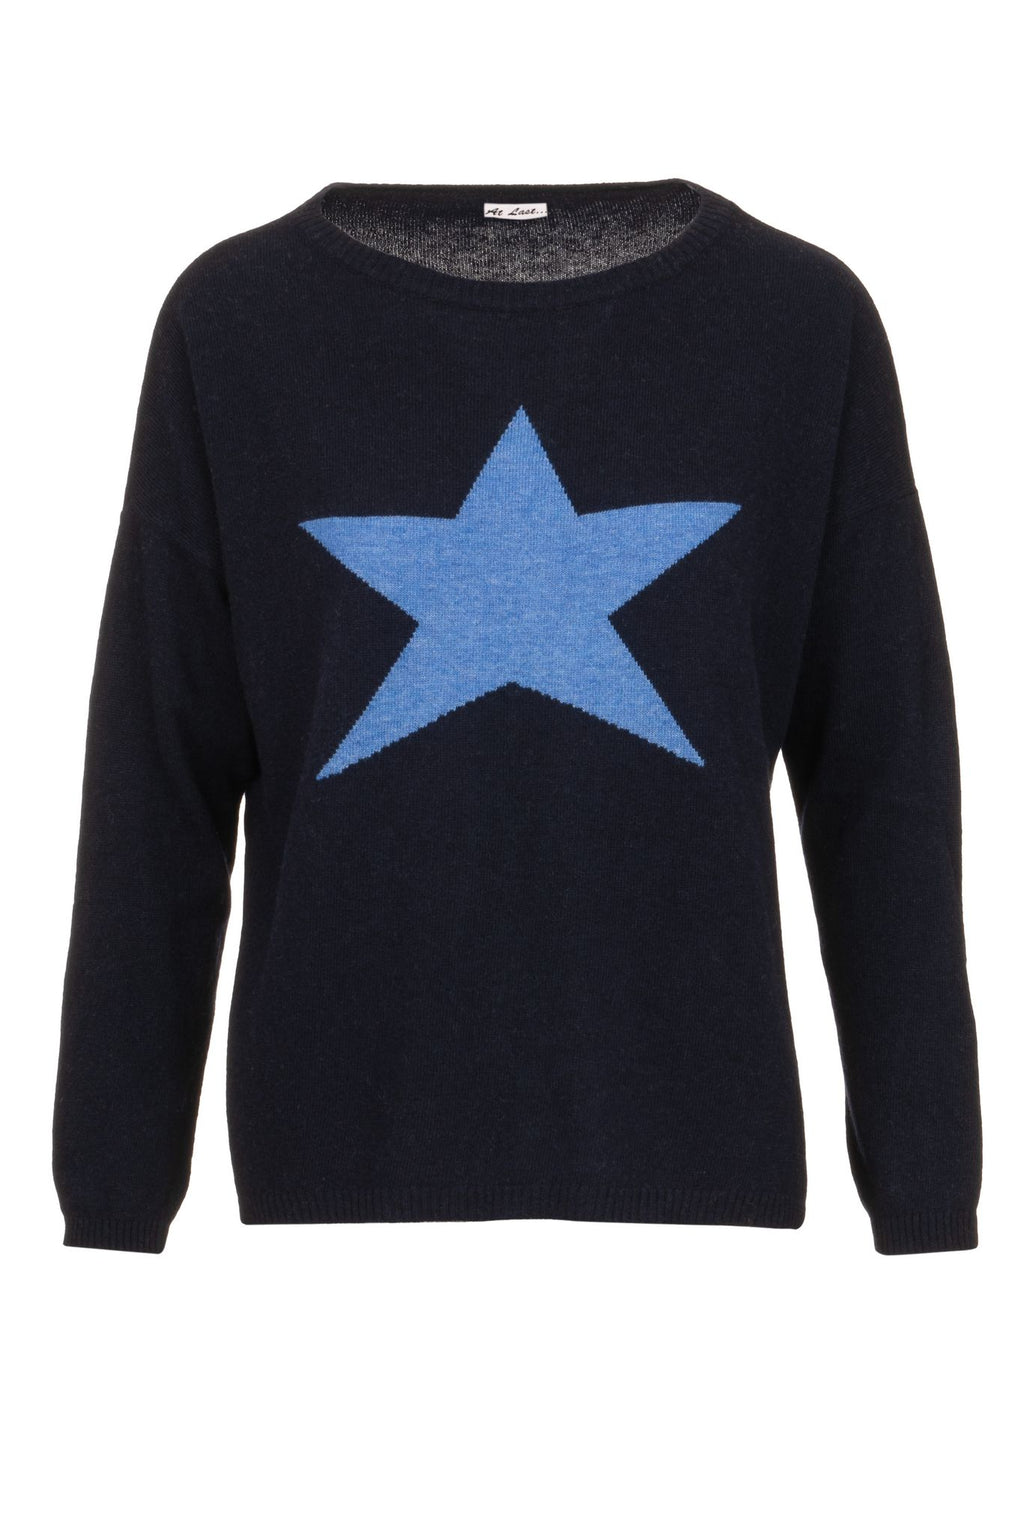 Cashmere Sweater- Large Blue Star